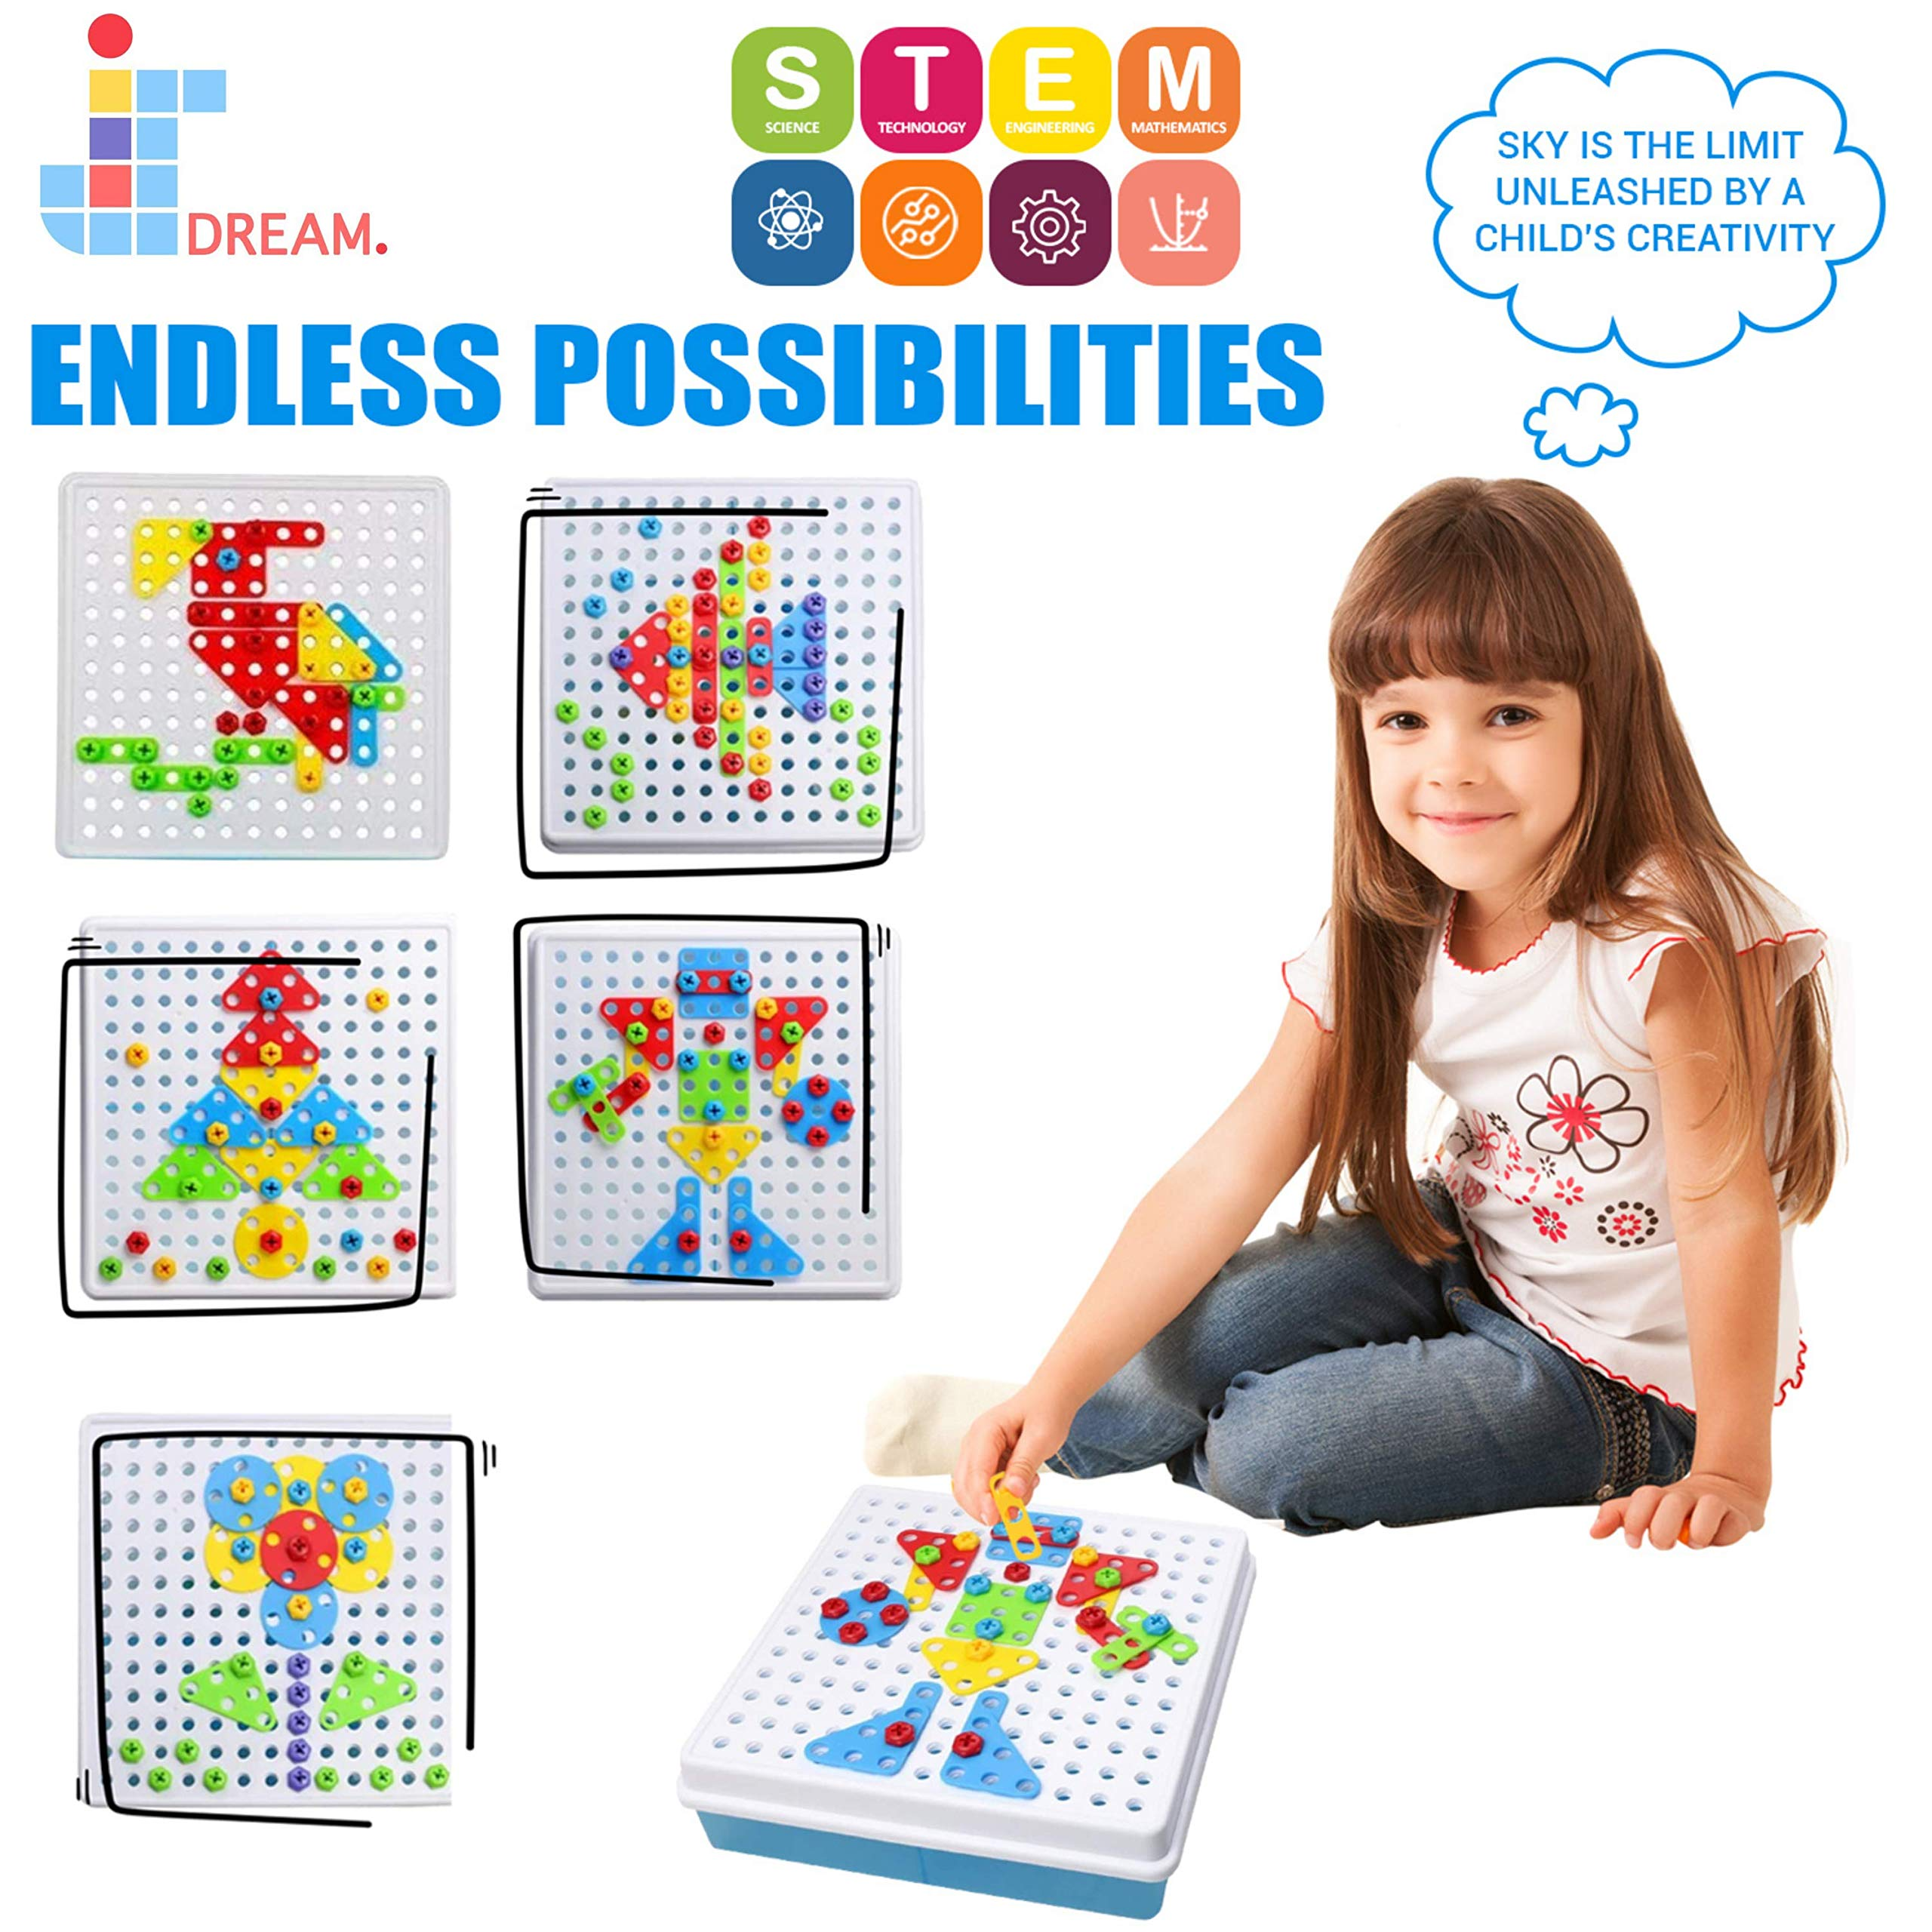 JIDREAM Screw Toy Kids Set, Building Block Games, Kids Puzzle Toy With Screwdriver, Educational Learning Game, STEM Toy Puzzle For Boys and Girls 180pcs العاب للاطفال العاب تعليمية